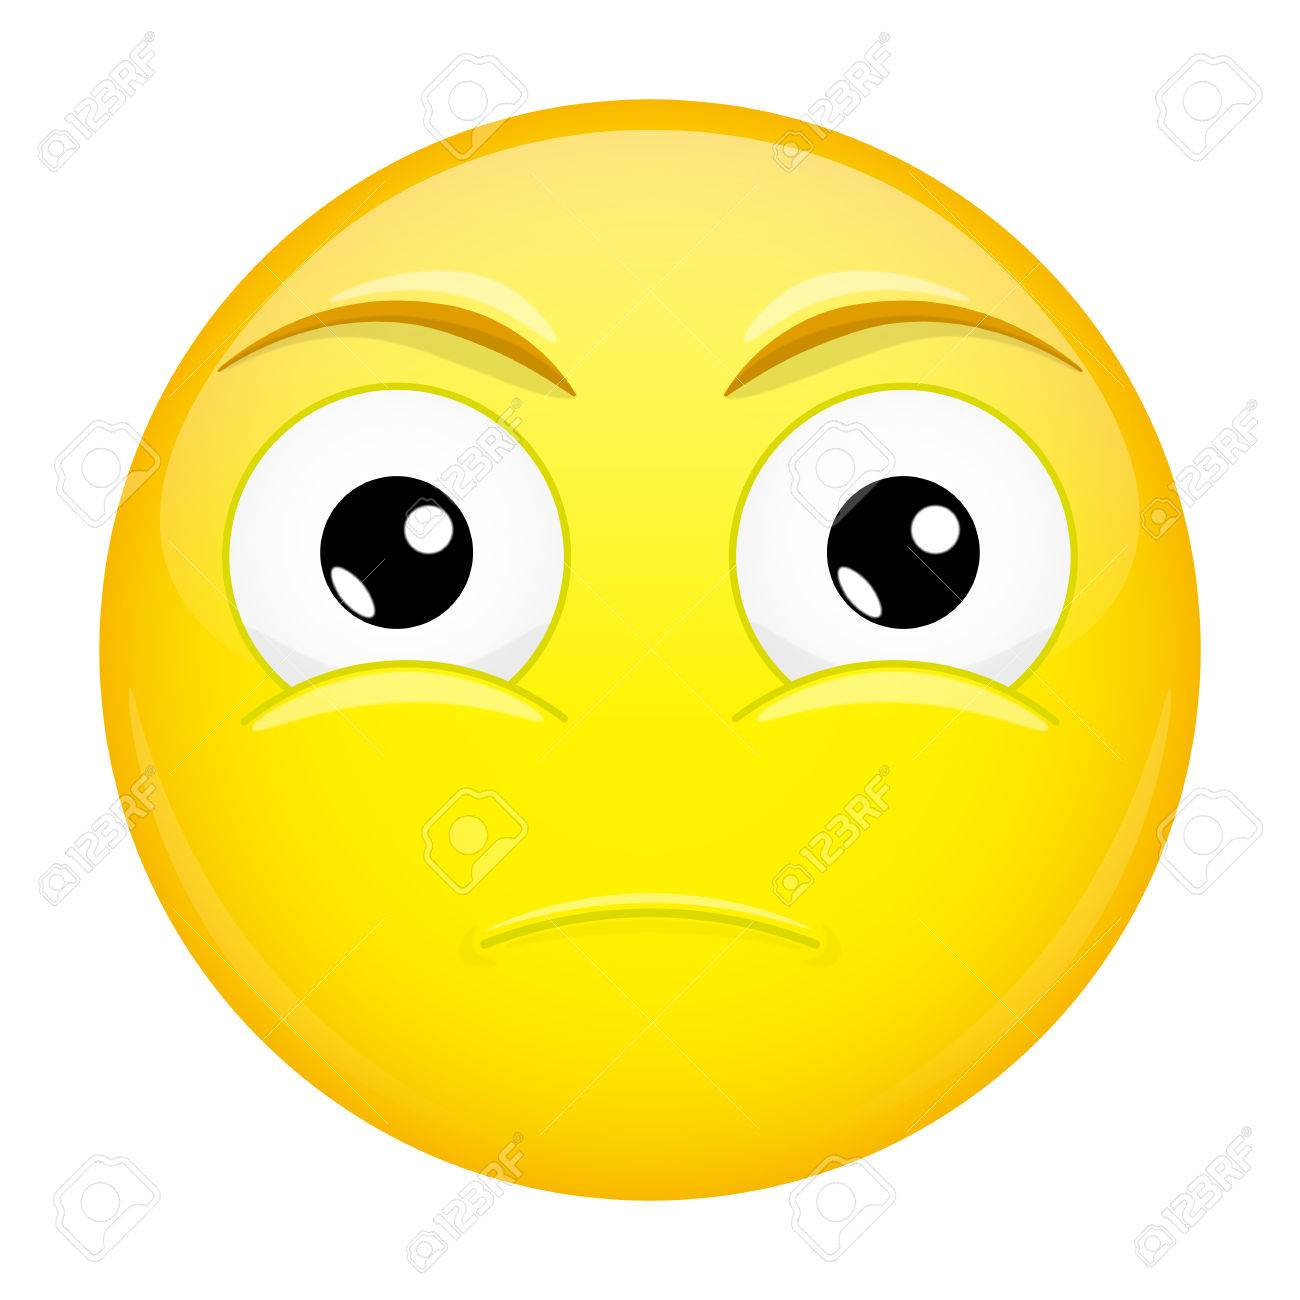 Sad emoji. Bore emotion. Hurt emoticon. Vector illustration smile icon.  Stock Vector